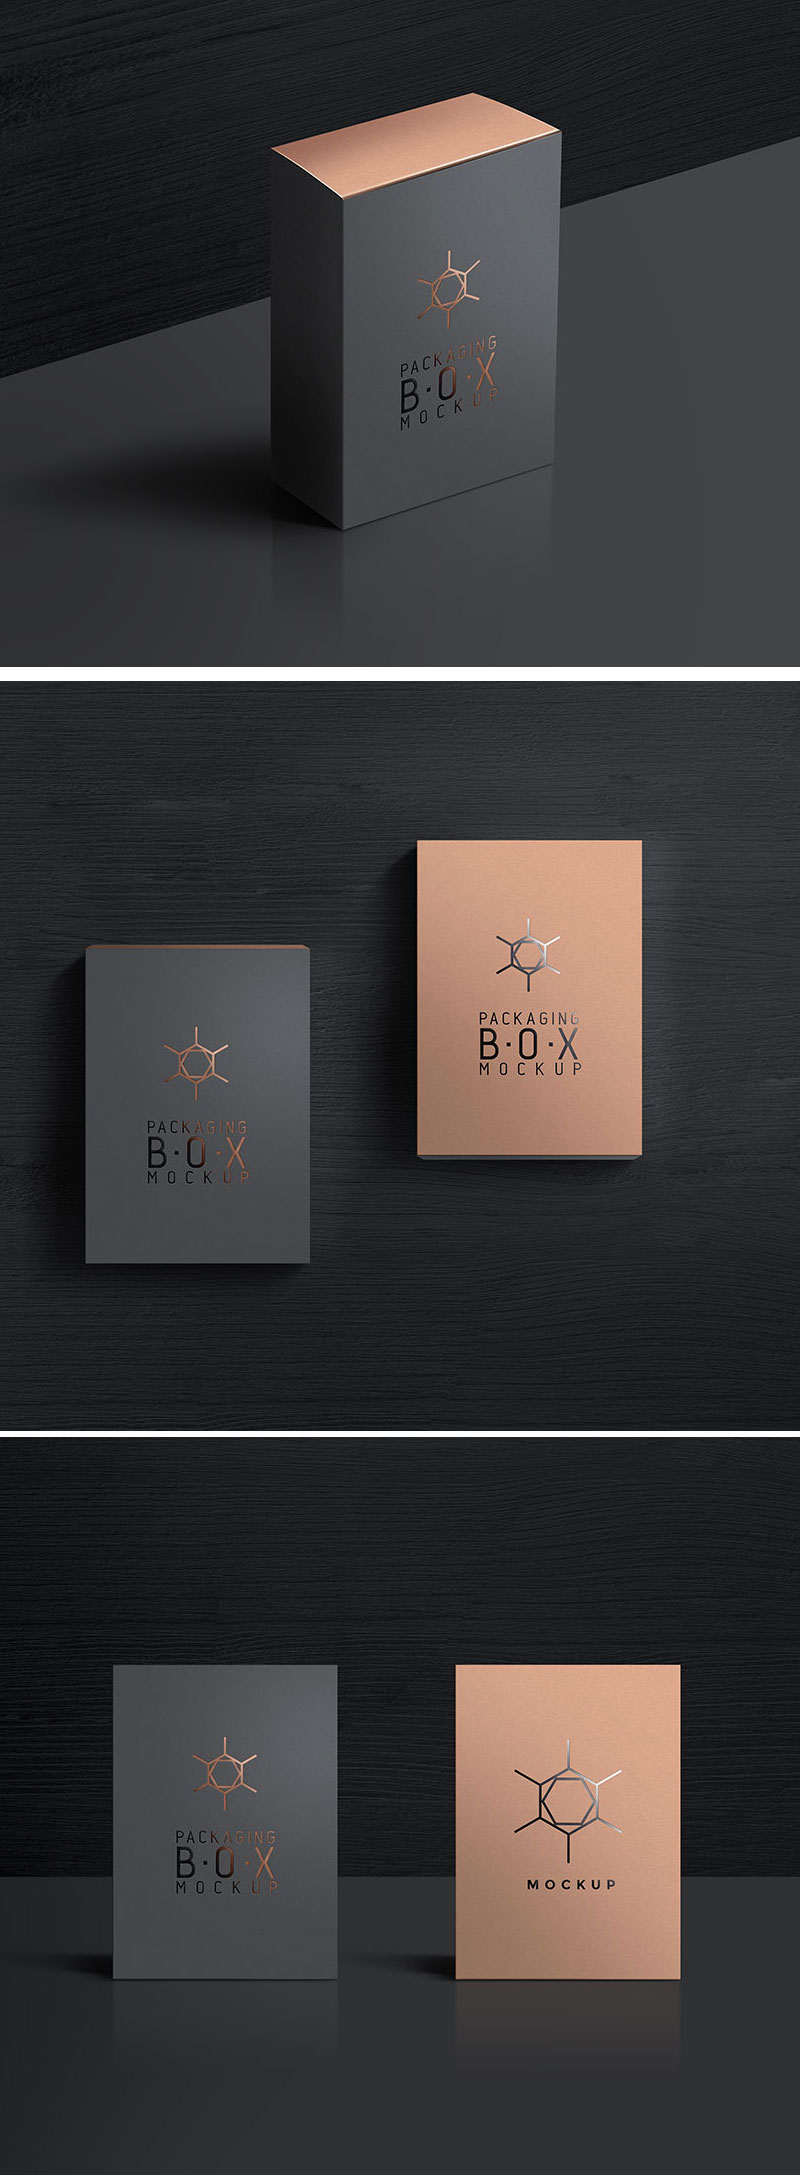 Packaging-Product-Box-Mockup-PSD